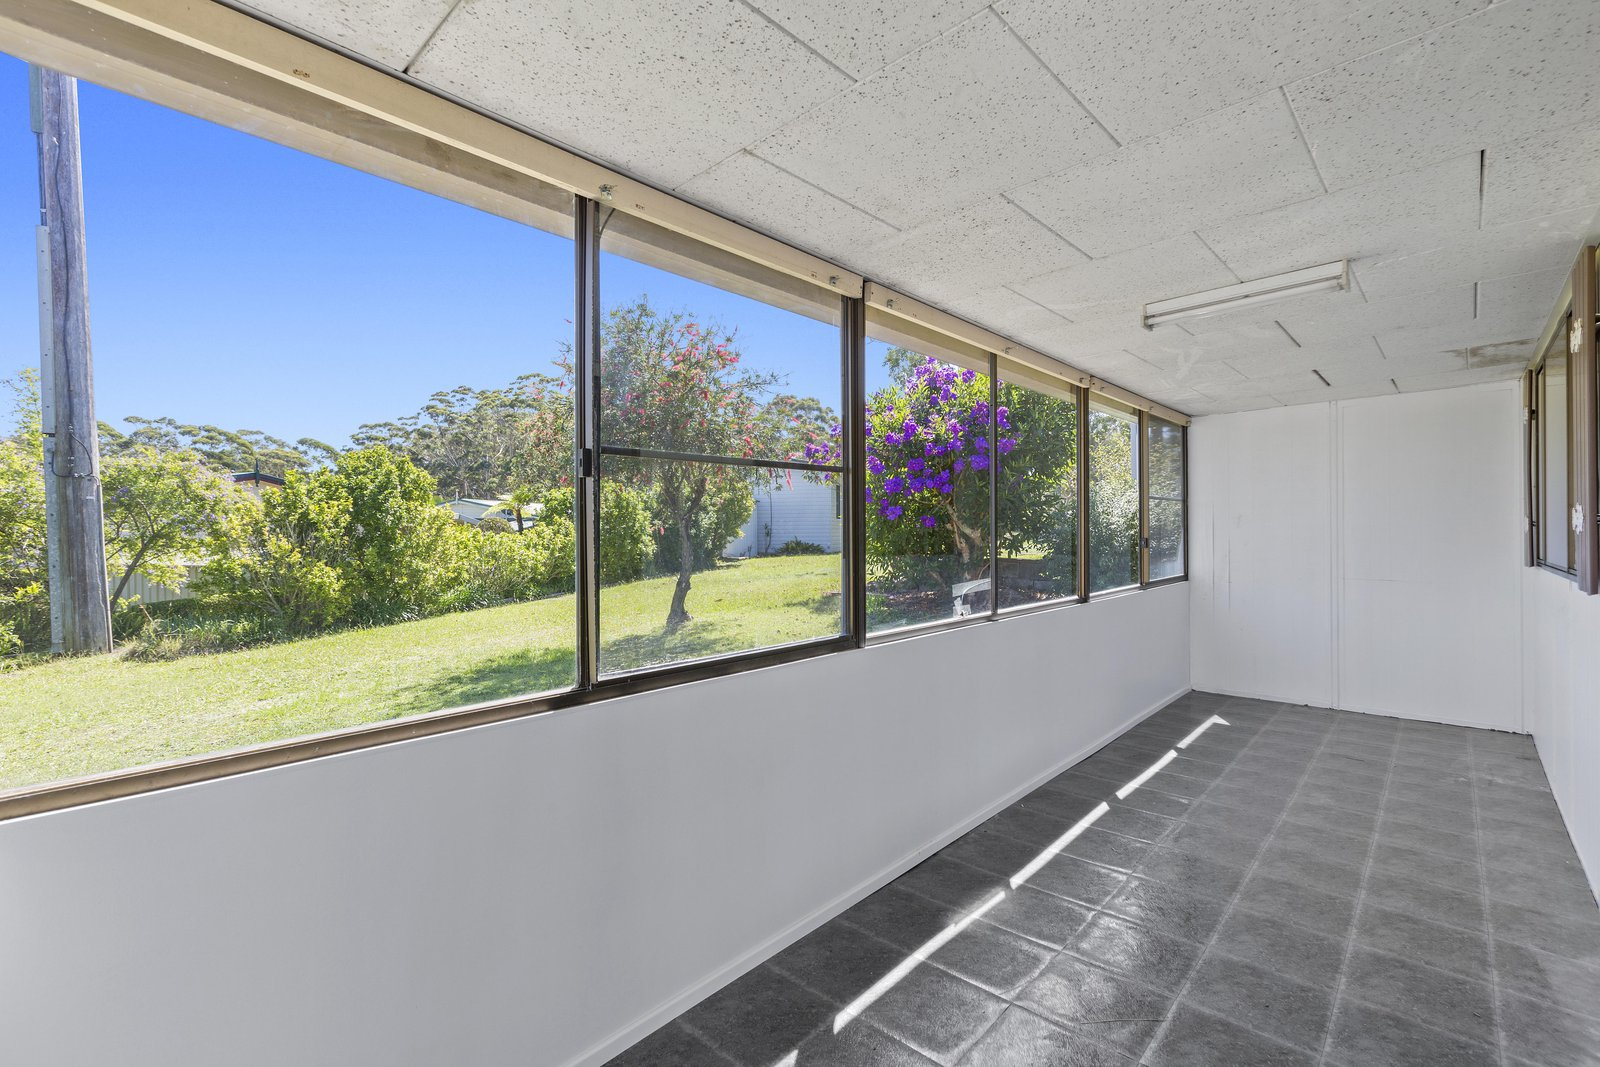 117/57 empire bay drive, kincumber, 2251 australia - wiseberry real